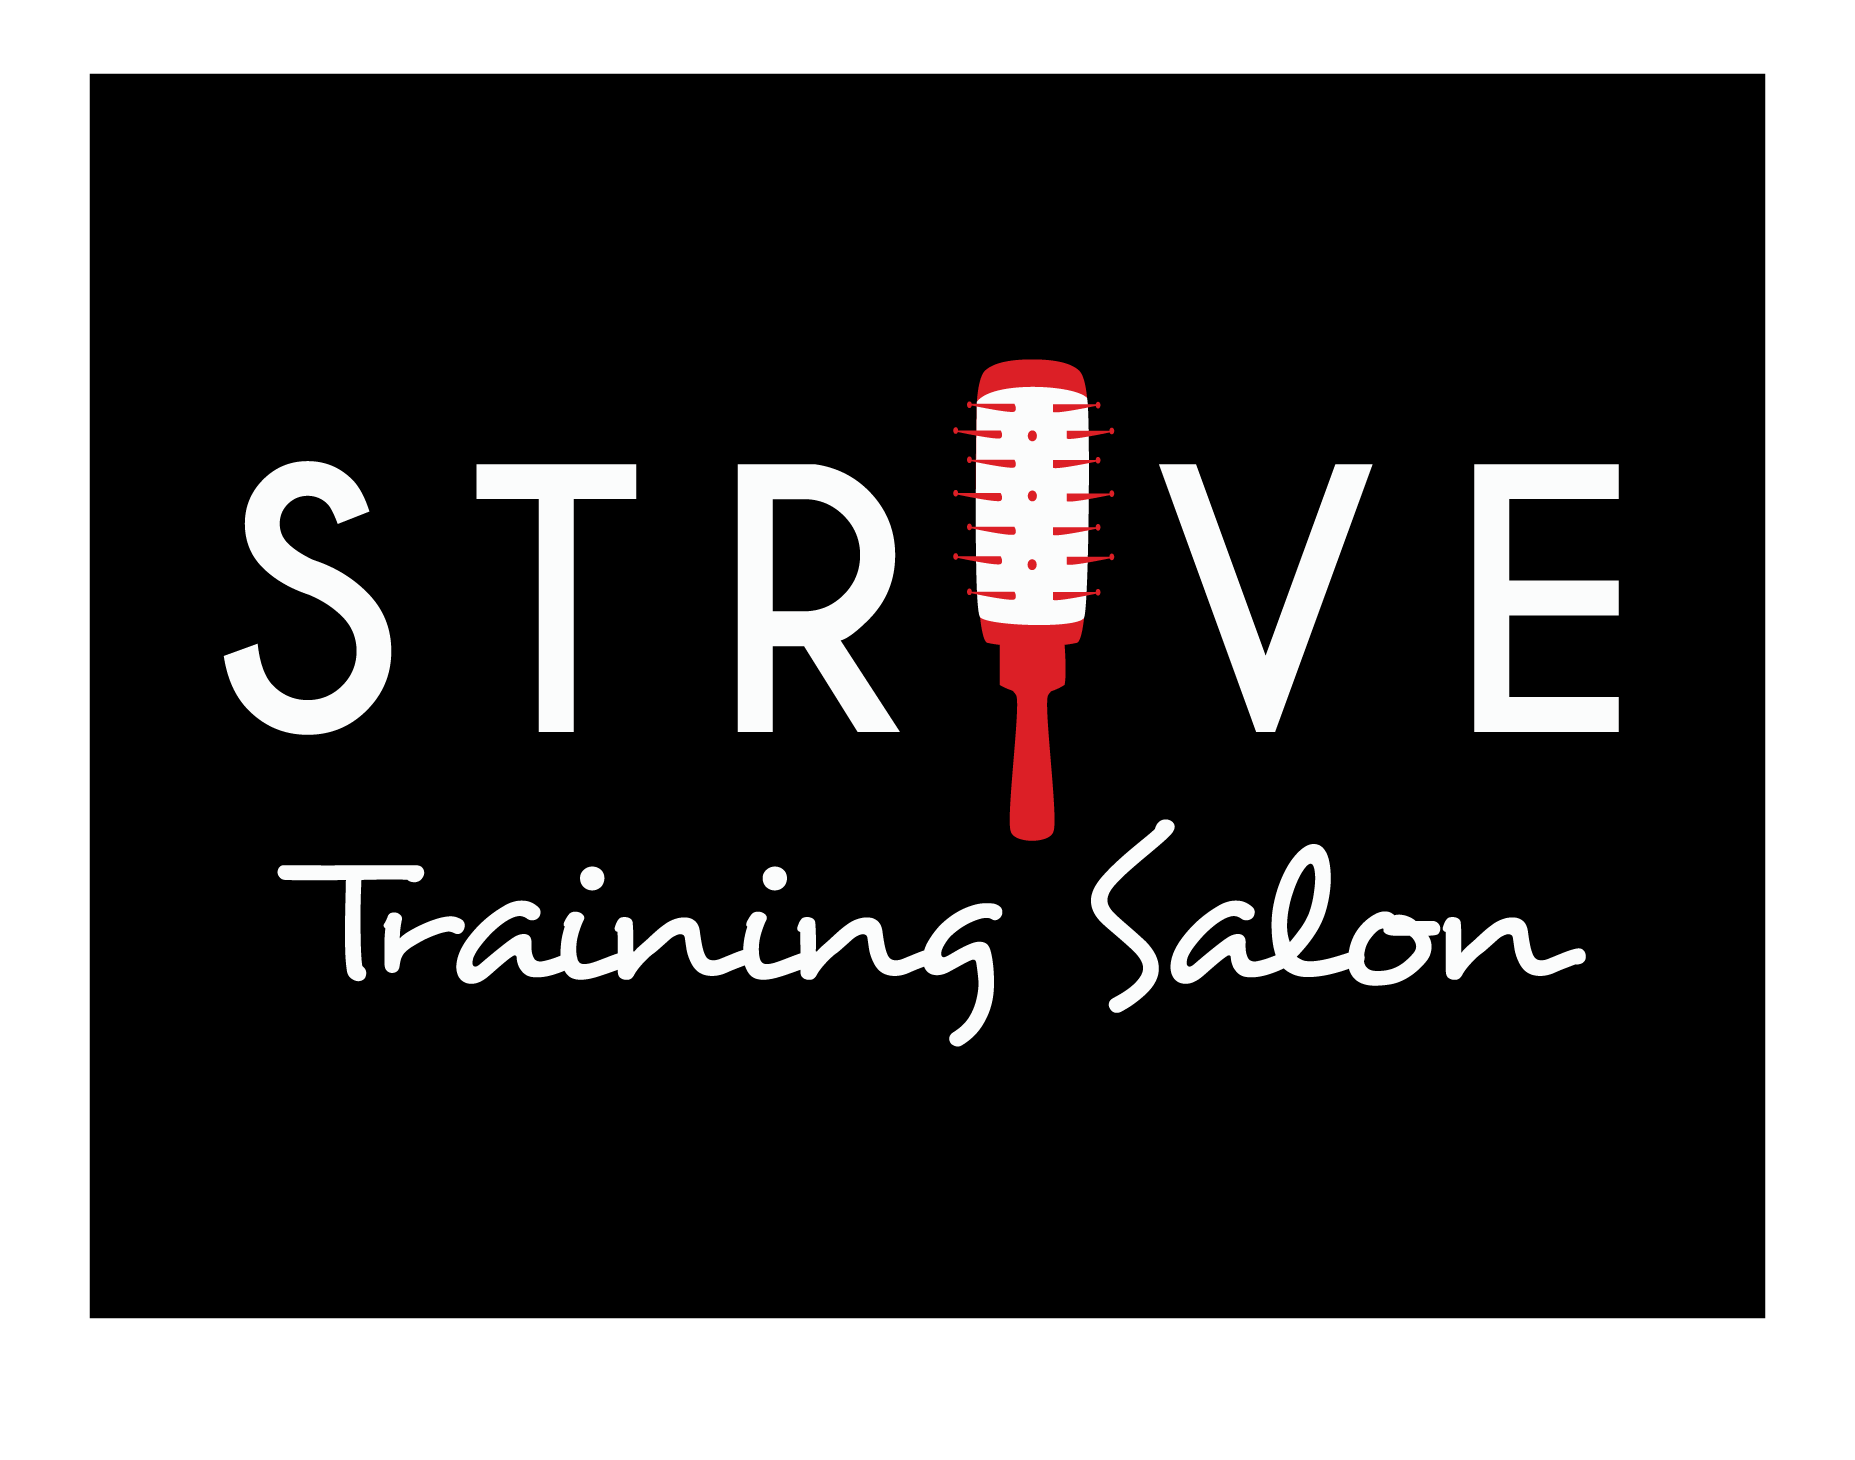 Strive Training Salon